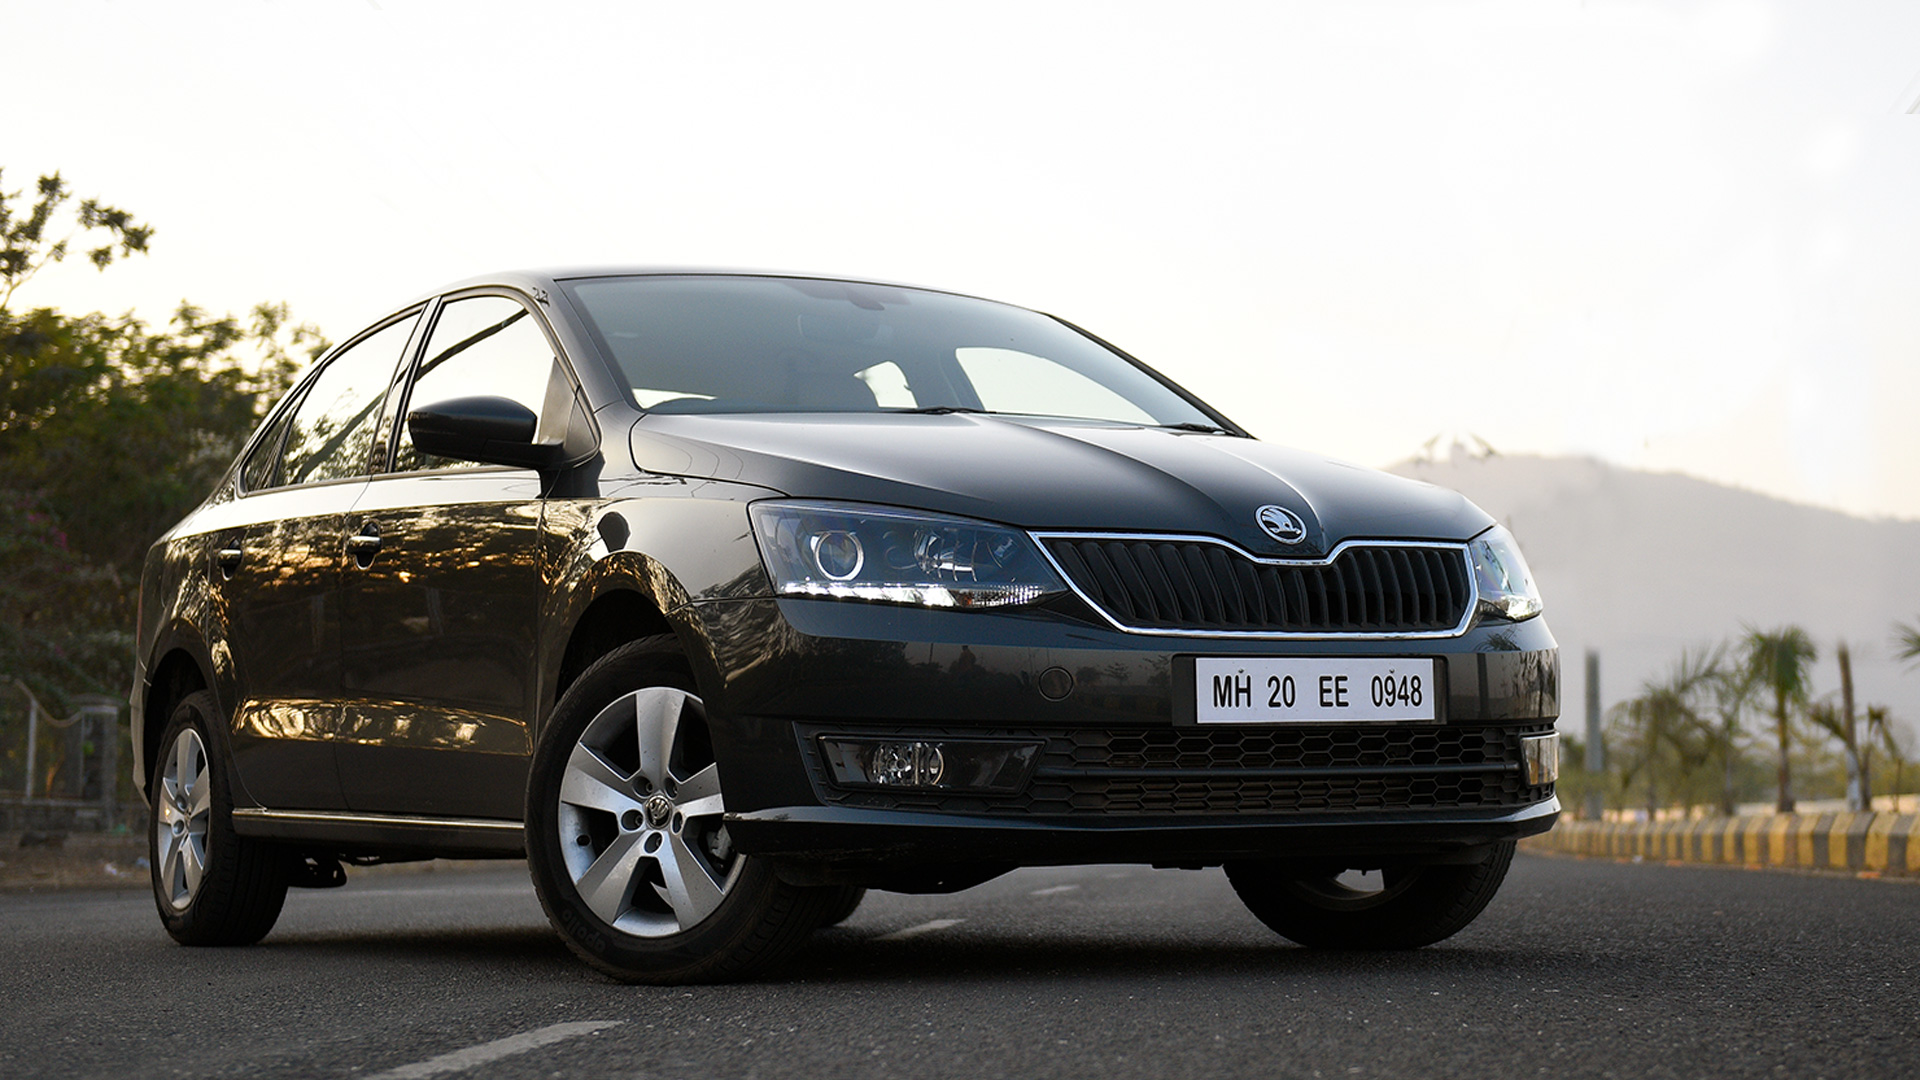 skoda rapid 2016 1 5 tdi cr a ambition price mileage. Black Bedroom Furniture Sets. Home Design Ideas